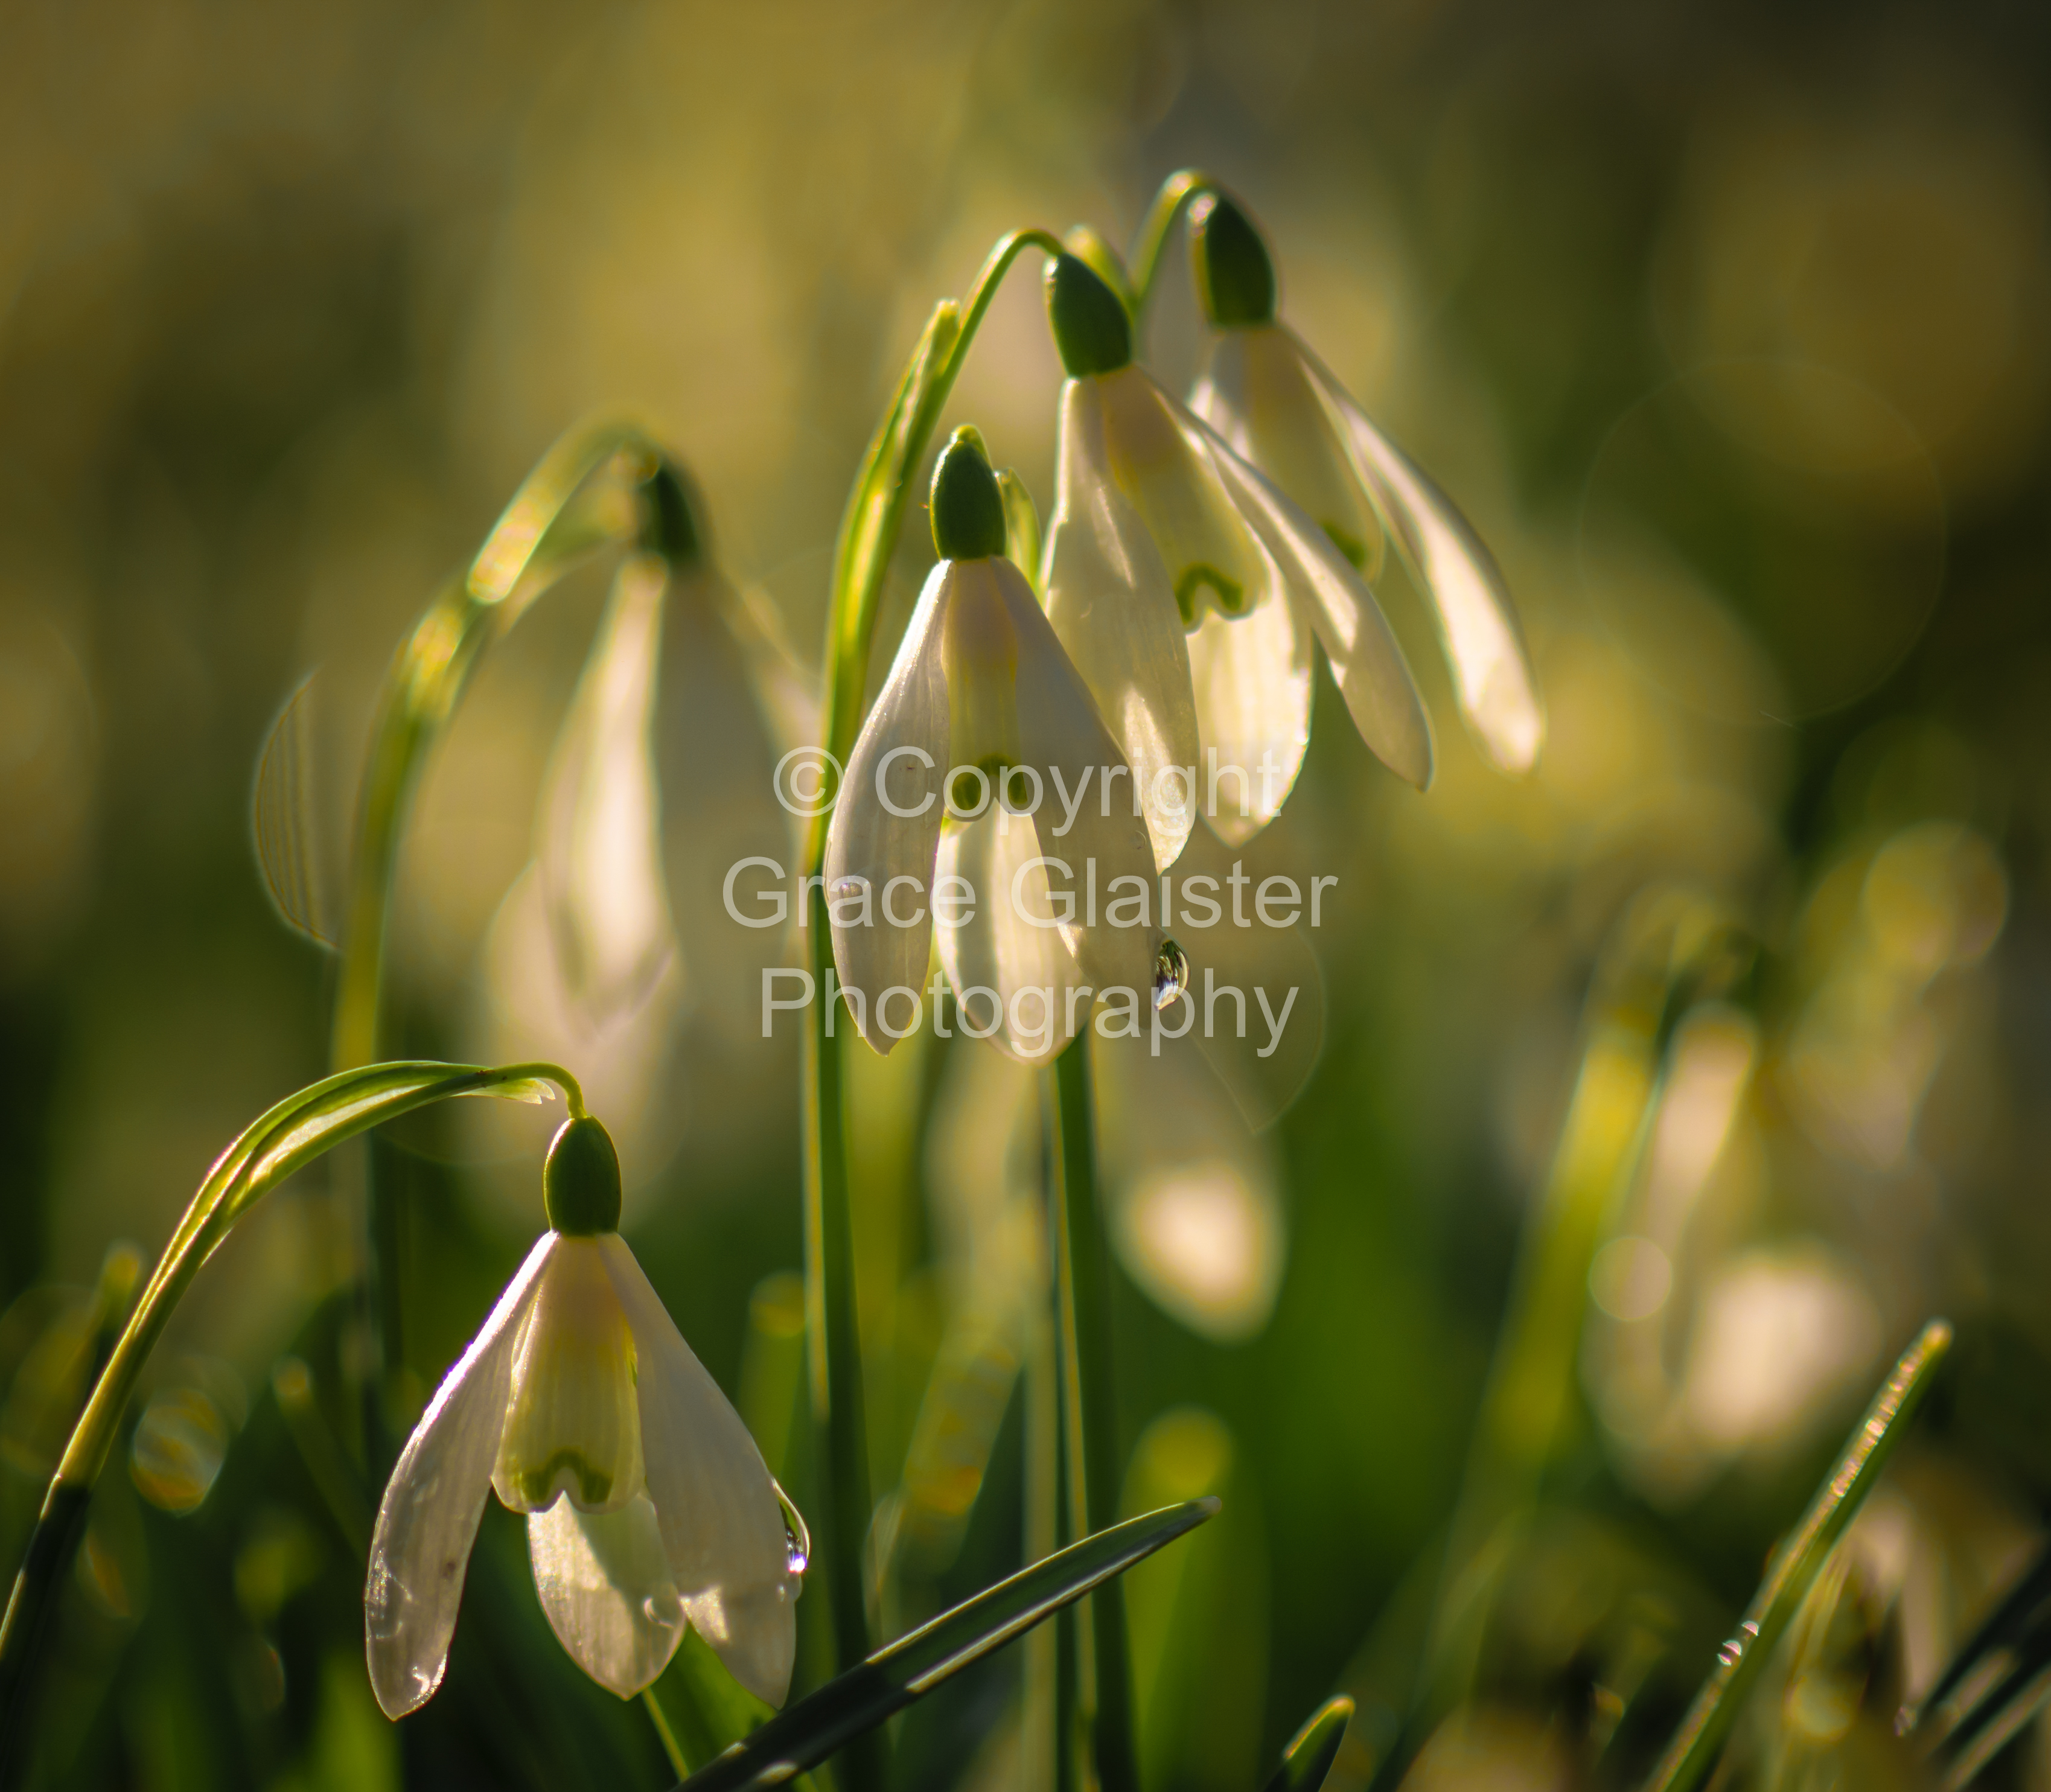 Snowdrops and Raindrops by Grace Glaister